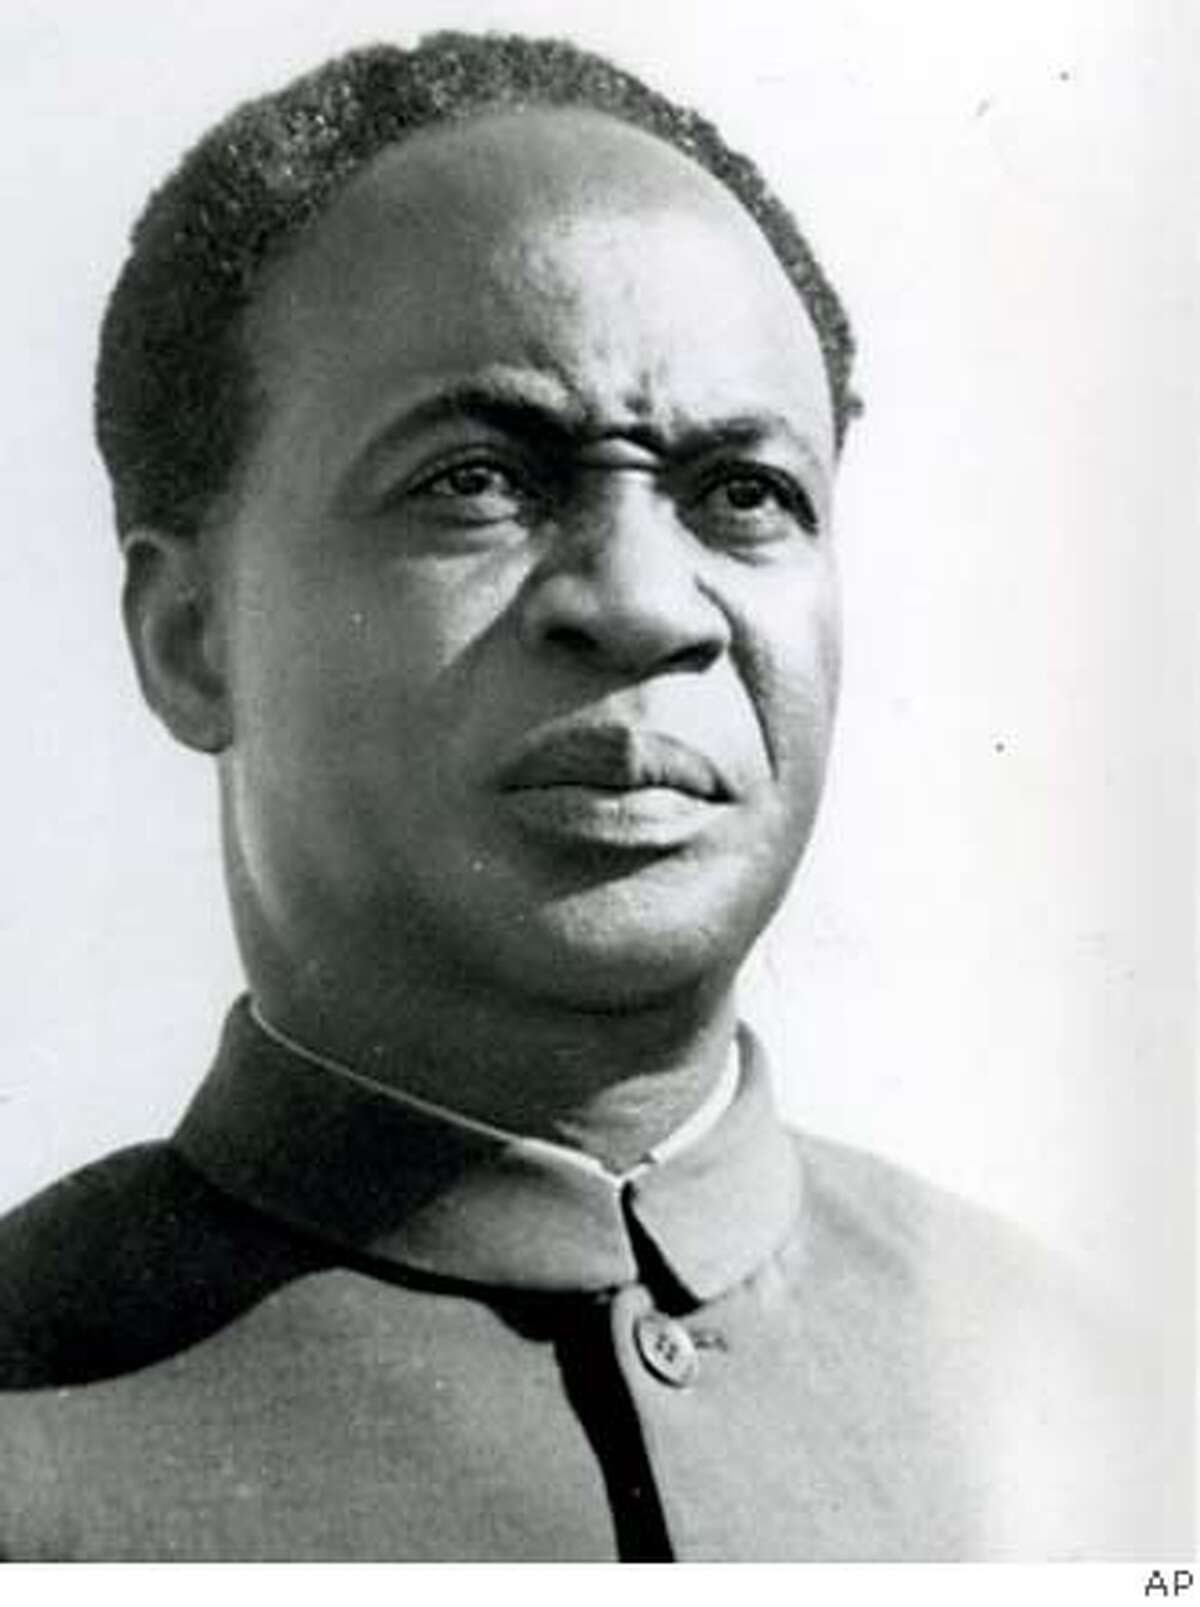 Kwame Nkrumah, president of Ghana in 1957, had seen racism firsthand in America. Associated Press file photo, 1963